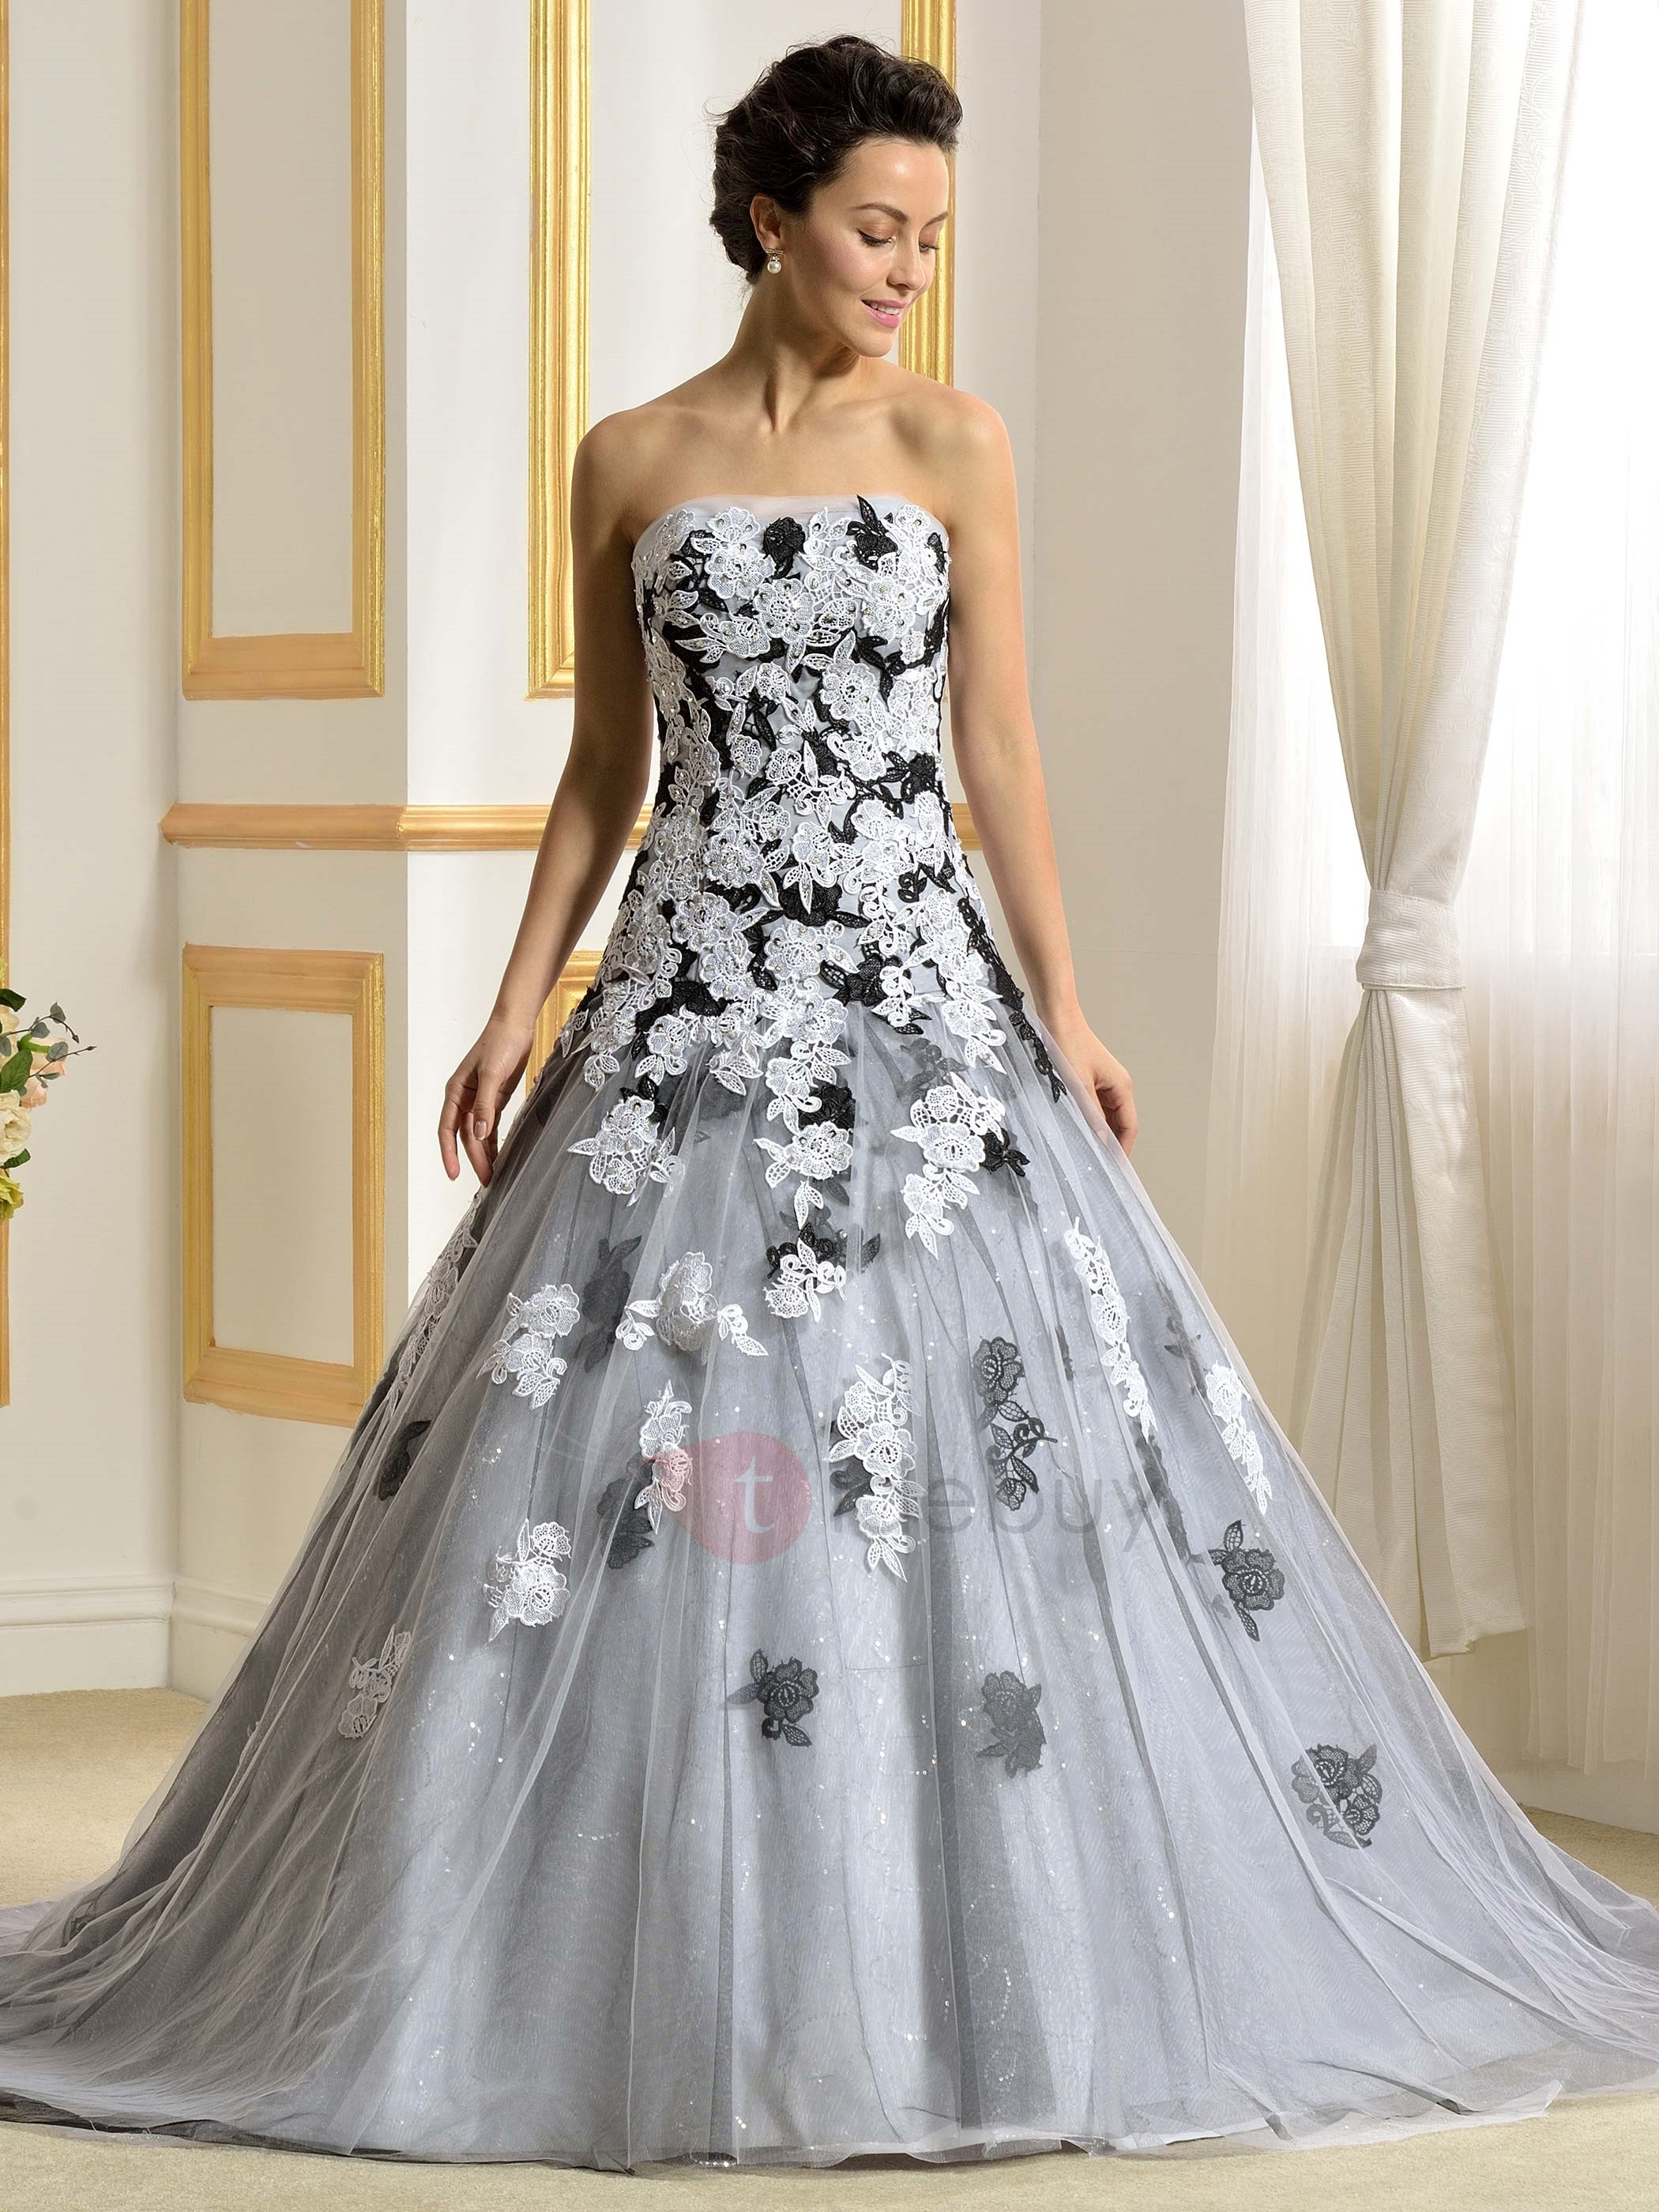 color wedding dresses floor length a-line strapless lace appliques color wedding dress :  tidebuy.com YTFWIGW